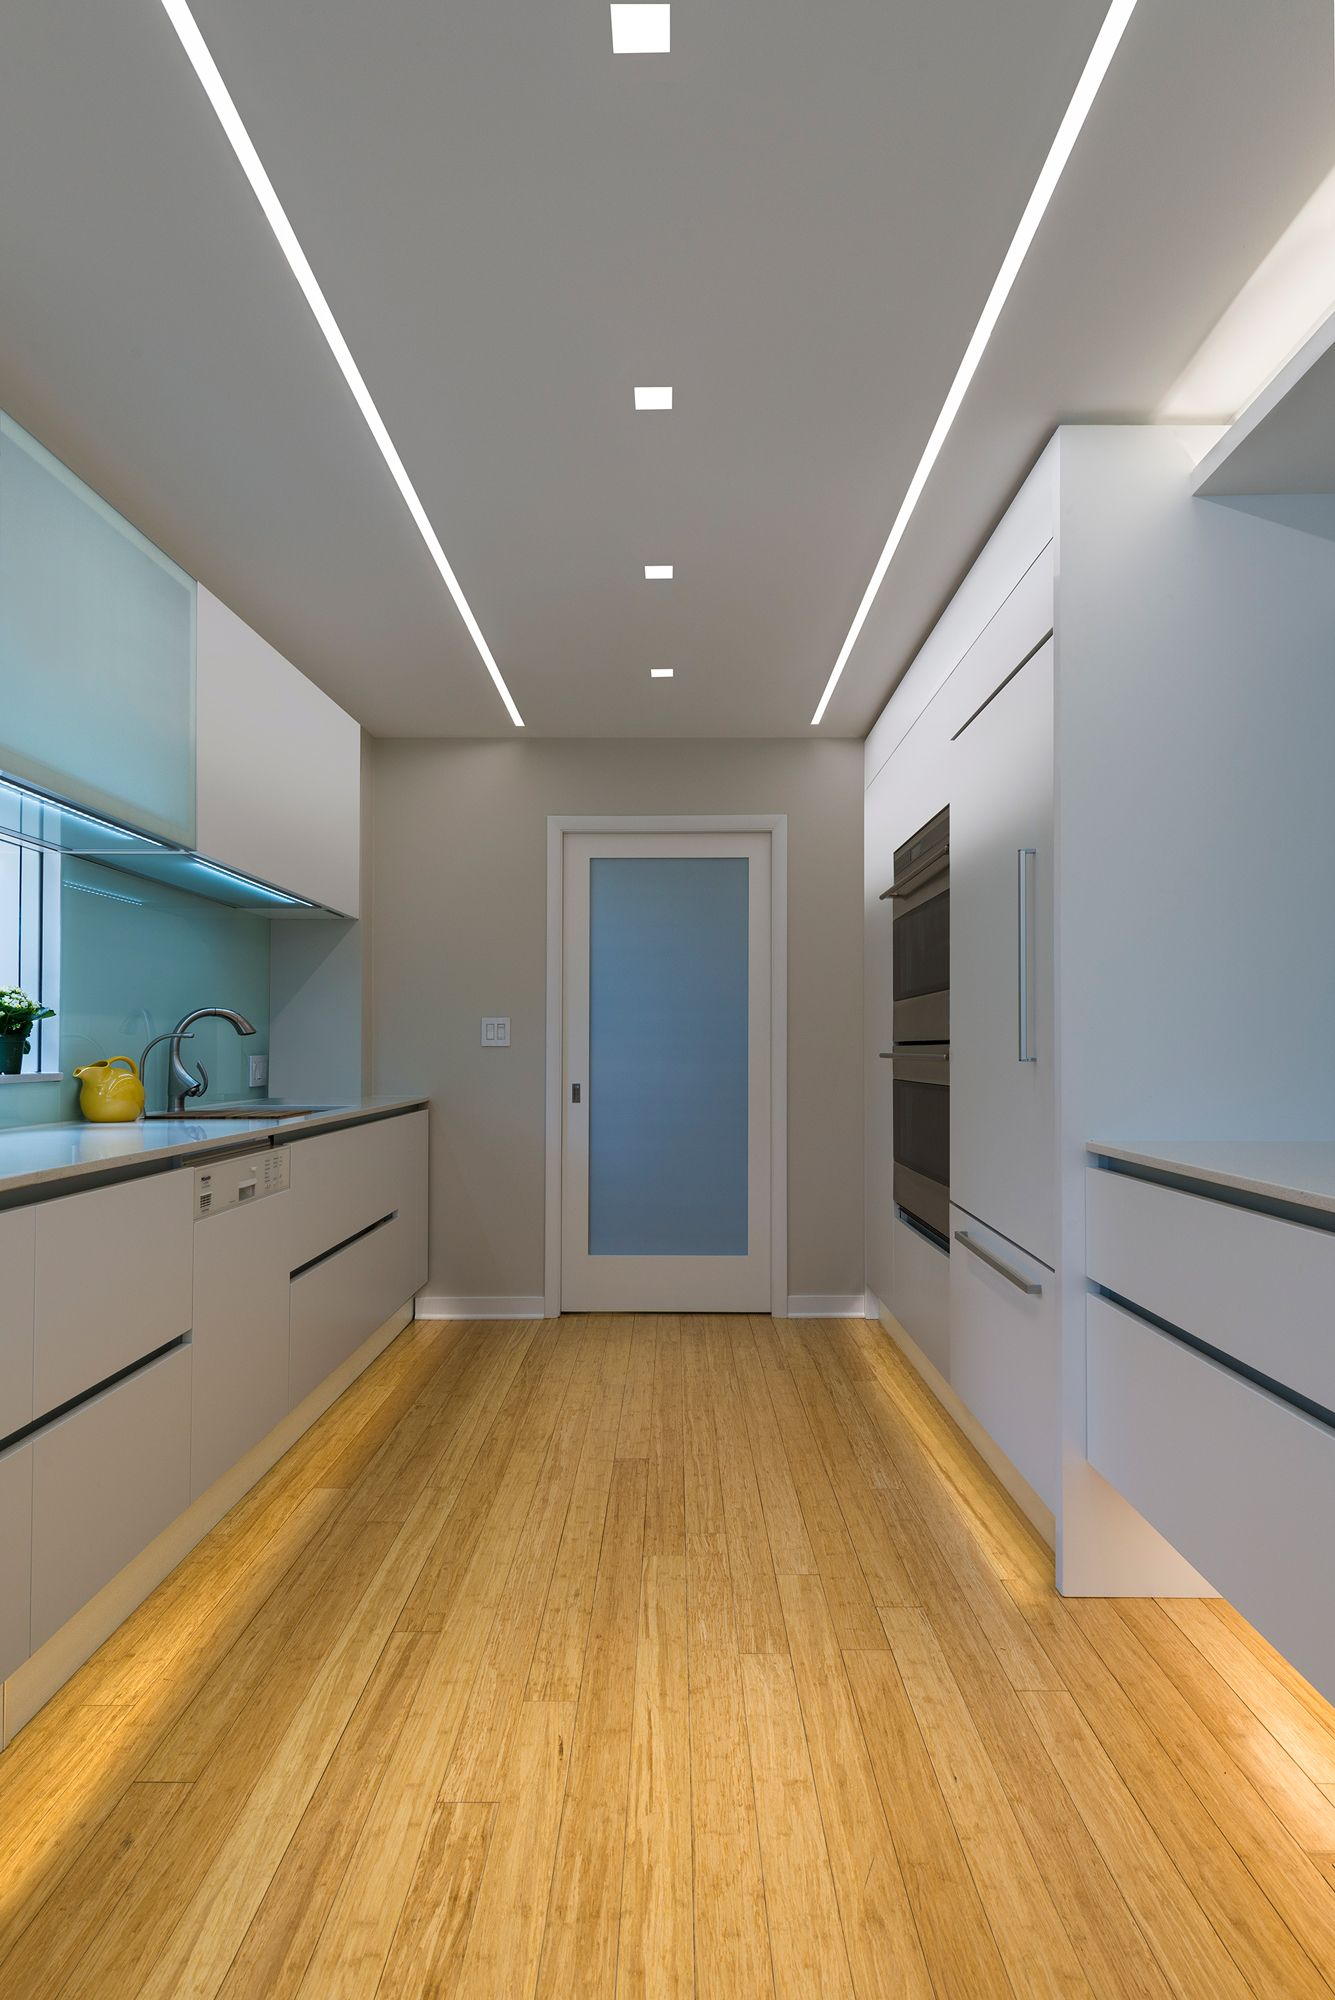 Aurora Square, Reveal Wall Wash, And LED Softstrip Make This Modern Kitchen  Design Complete. The Lighting Perfectly Offsets The Modern Italian Cabinetry